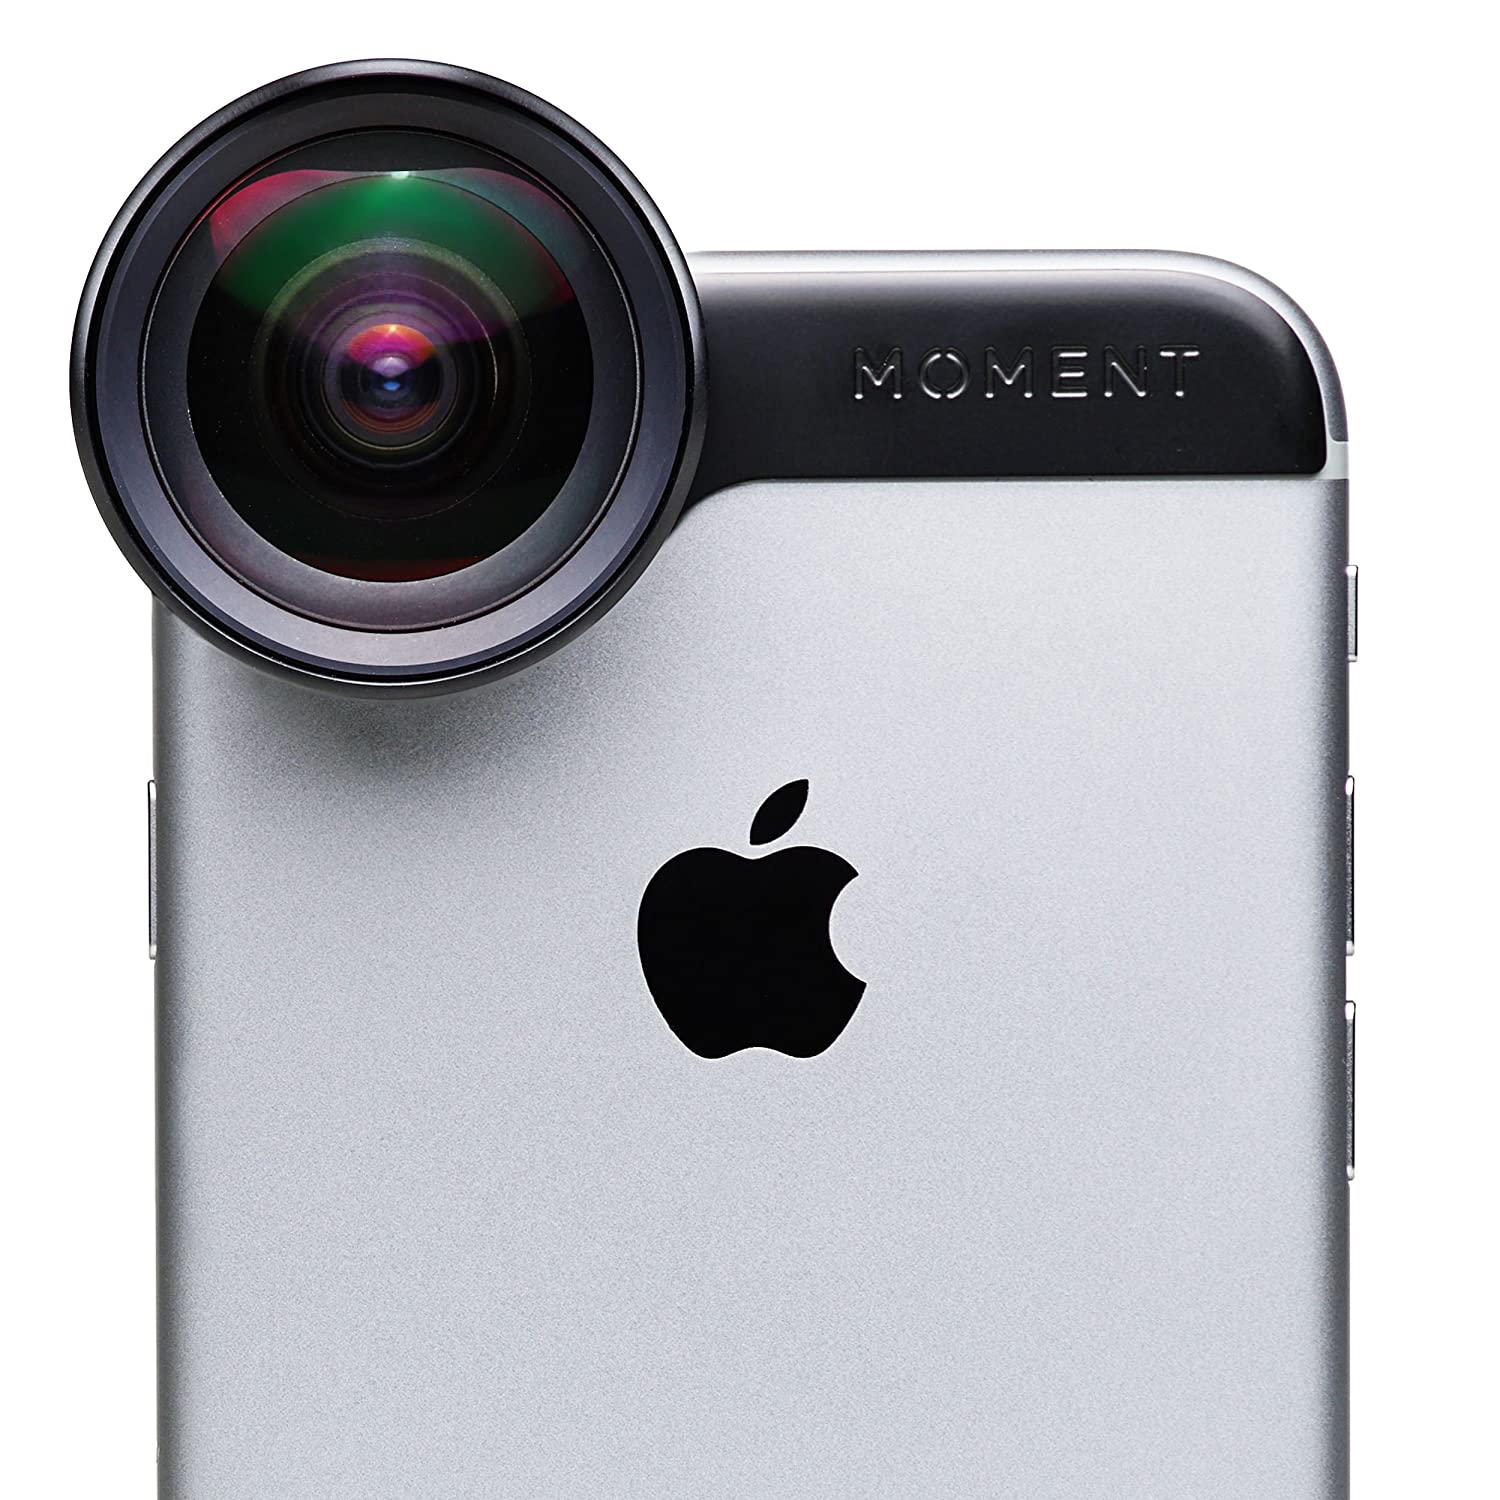 Amazon.com: iPhone 6/6s (ONLY) Wide Lens || Moment Original Wide ...